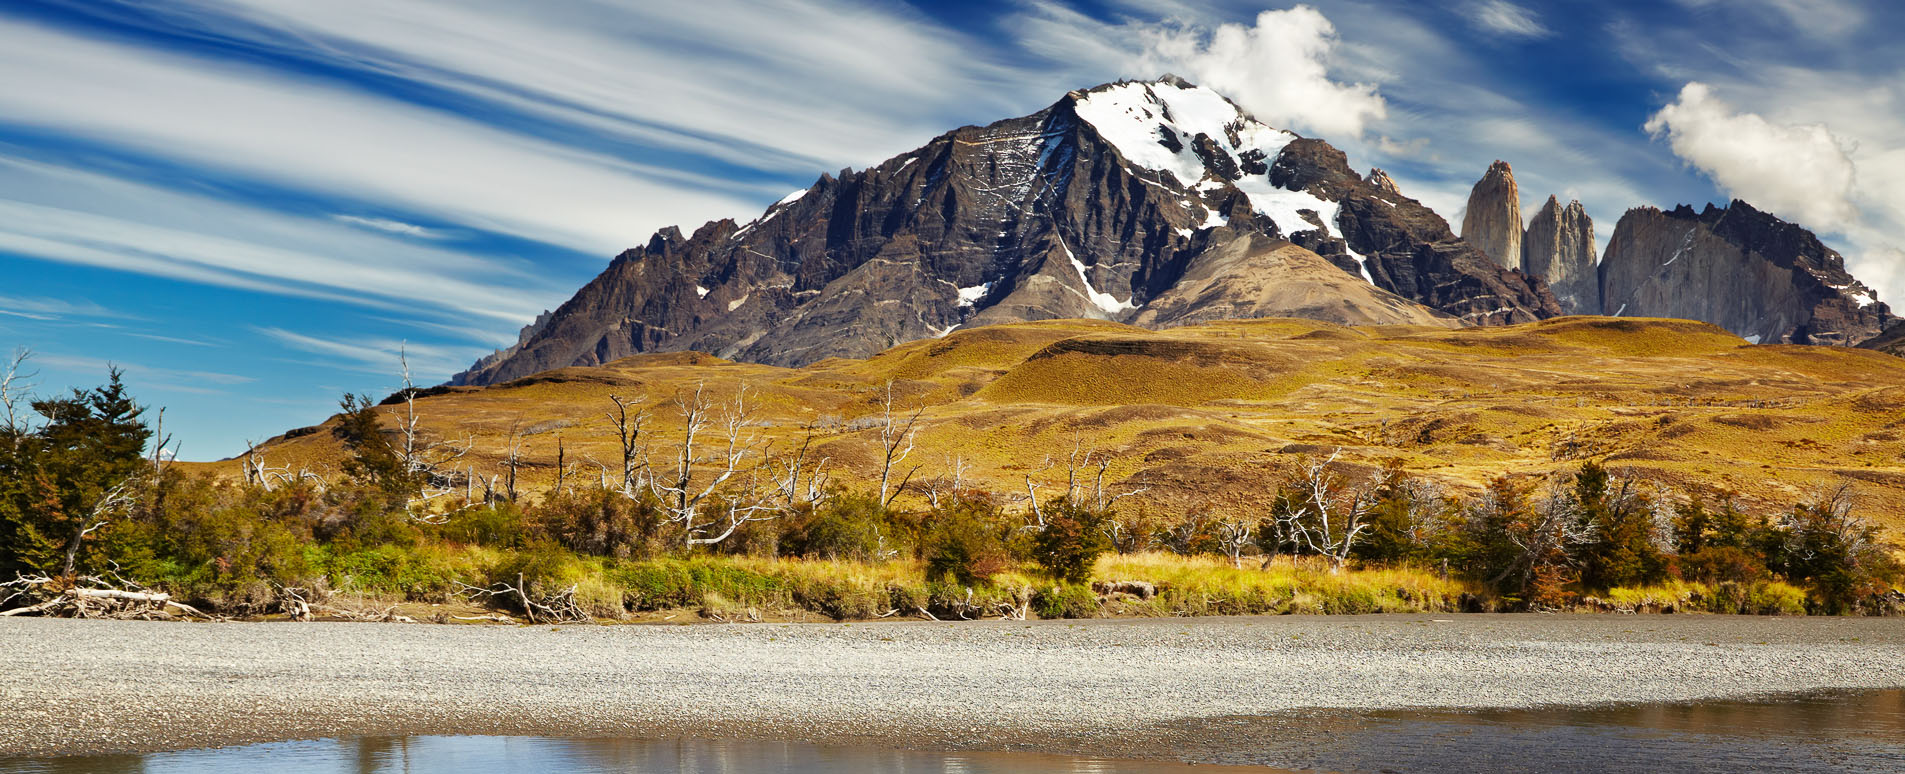 chile touring holidays